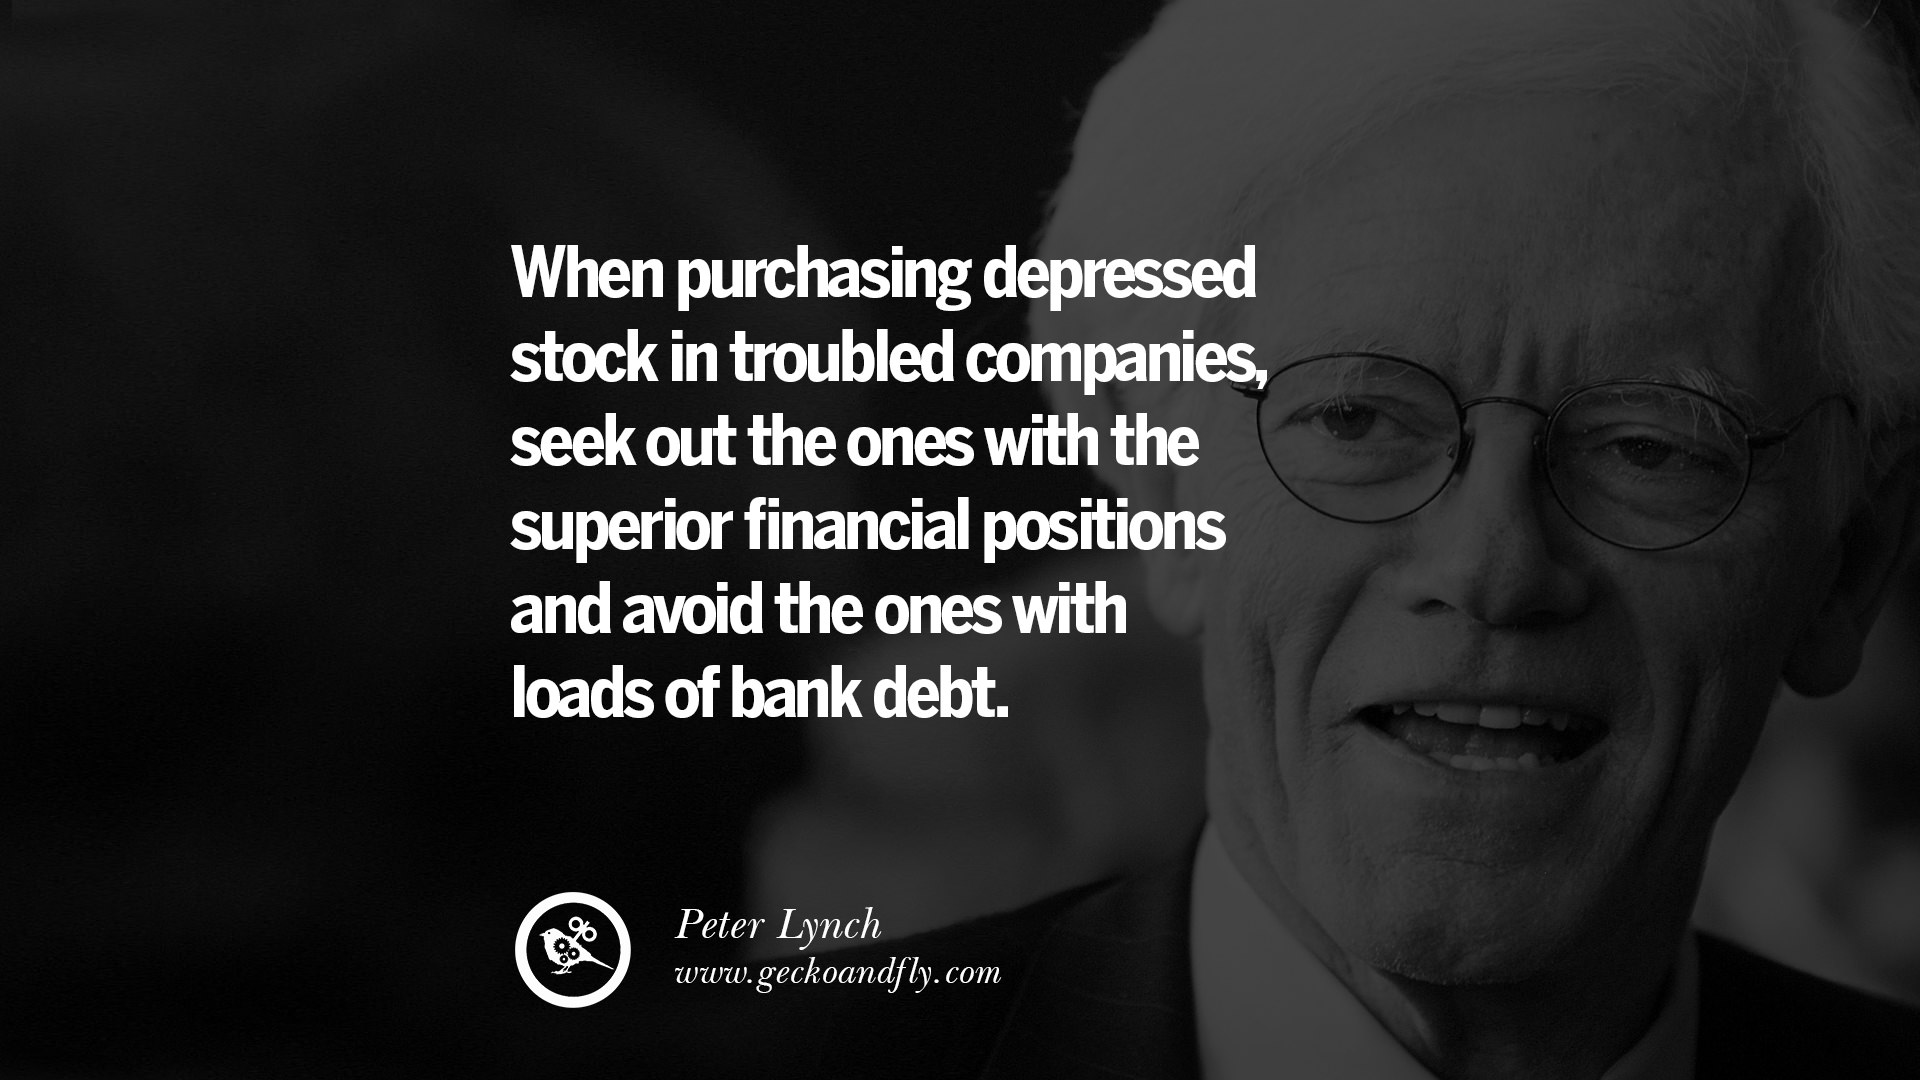 Latin Wisdom About Advertises: 20 Inspiring Stock Market Investment Quotes By Successful